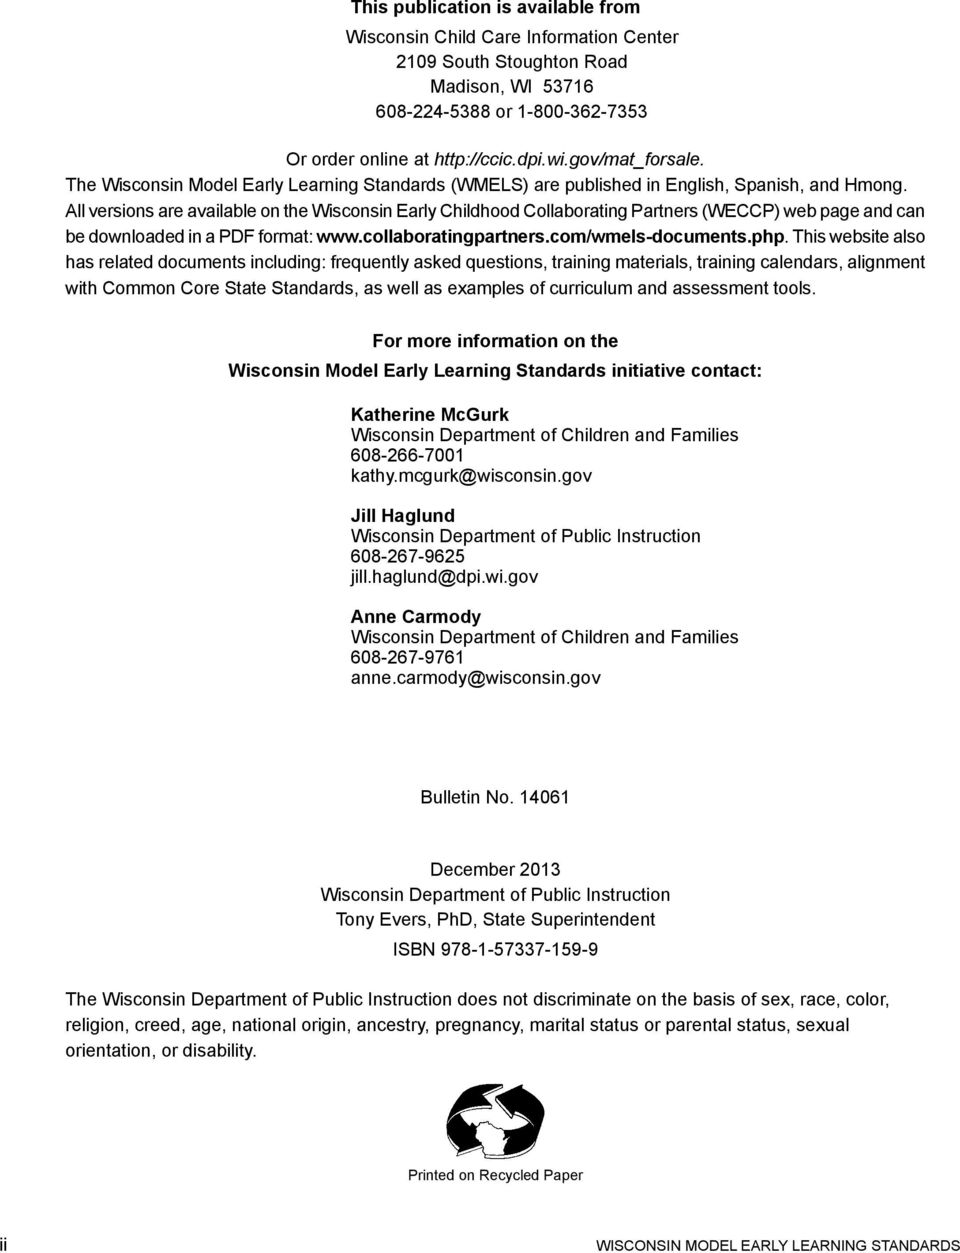 The Wisconsin Model Early Learning Standards Steering Committee - PDF